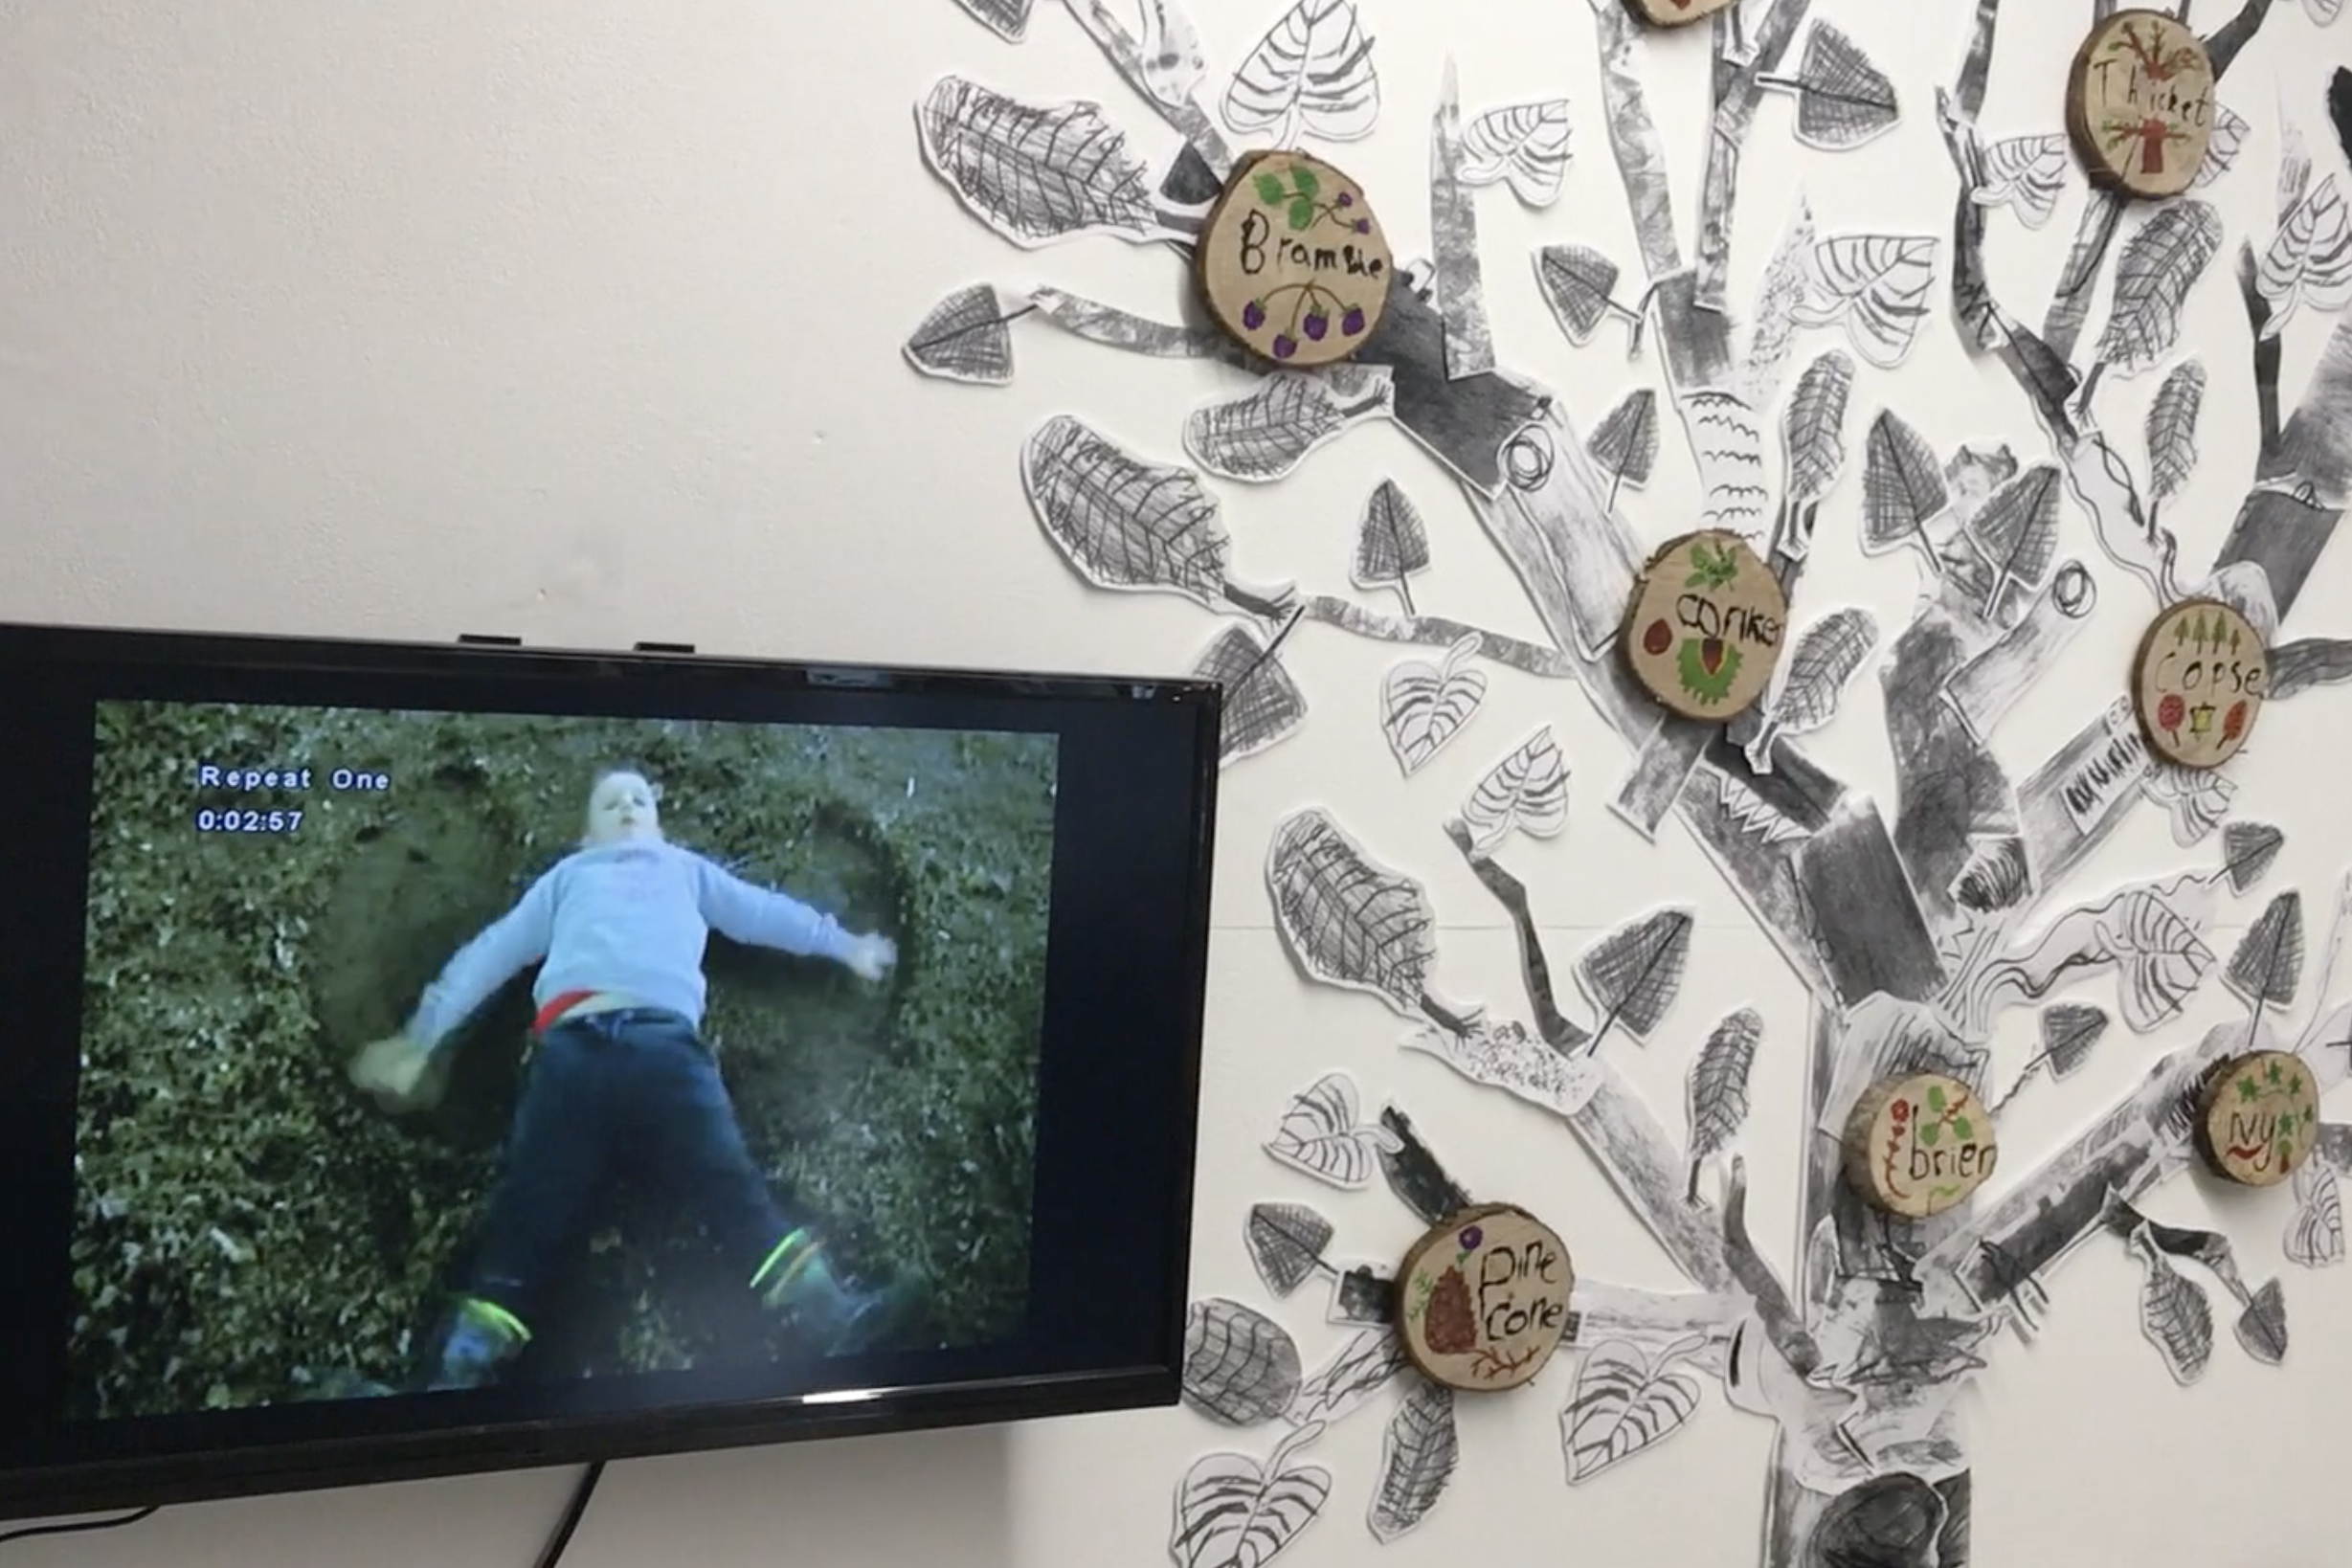 Aughnocloy exhibit at Virtually There exhibition - Kids Own - Photo montage with collage tree and video